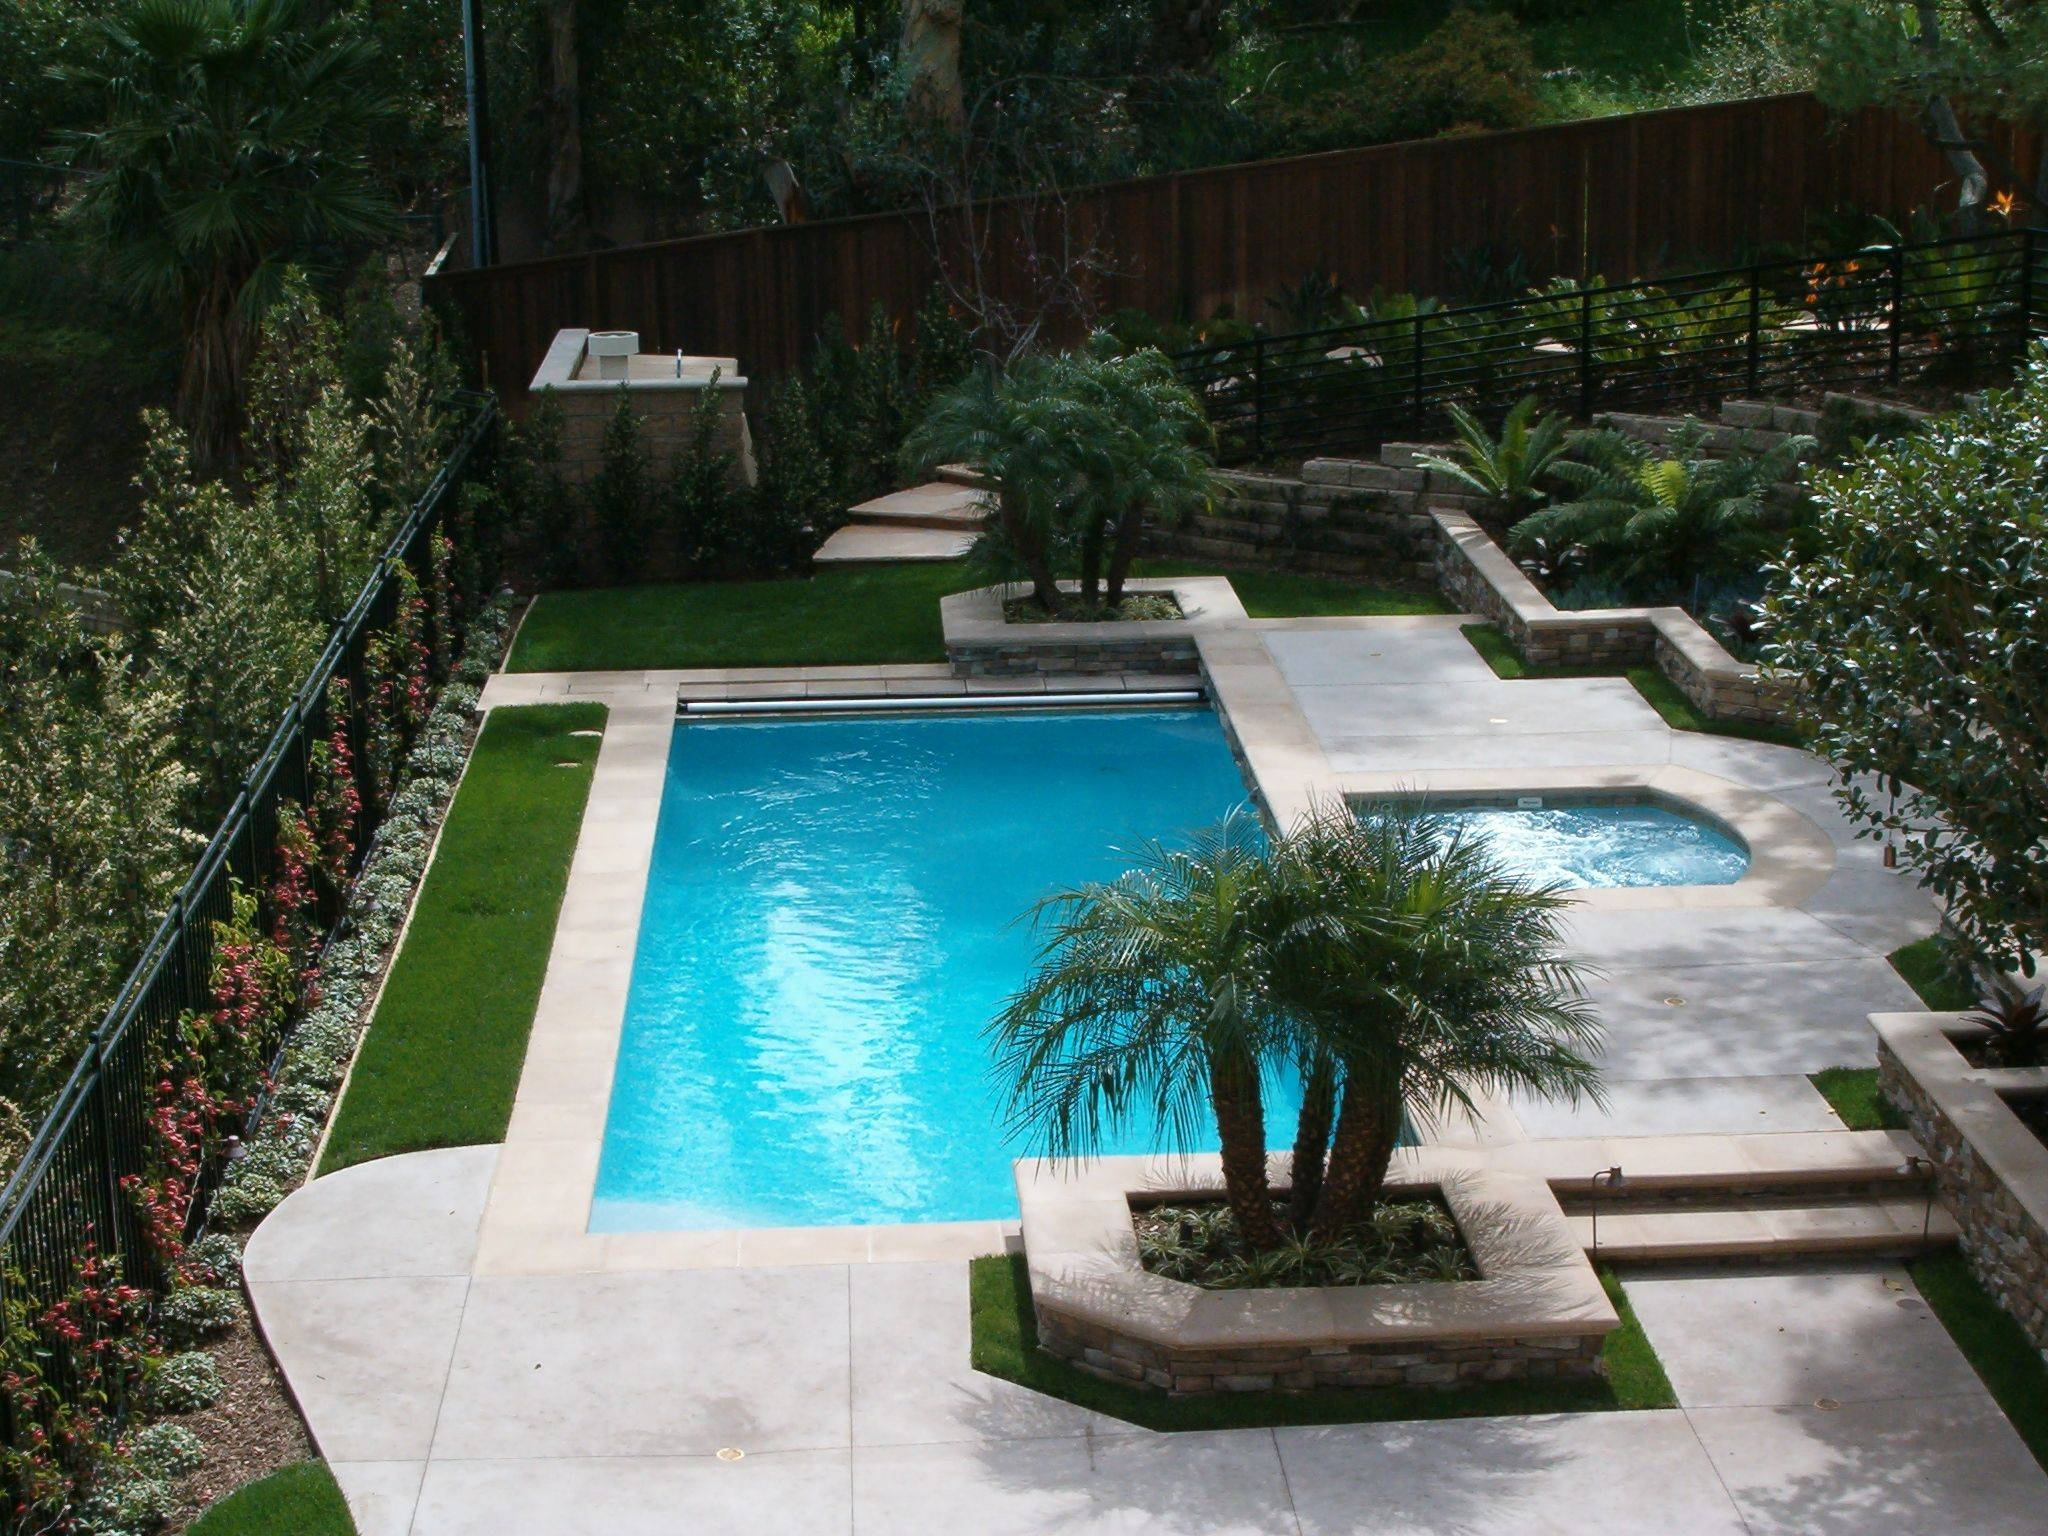 Backyard Oasis Pools and Construction | Home Design